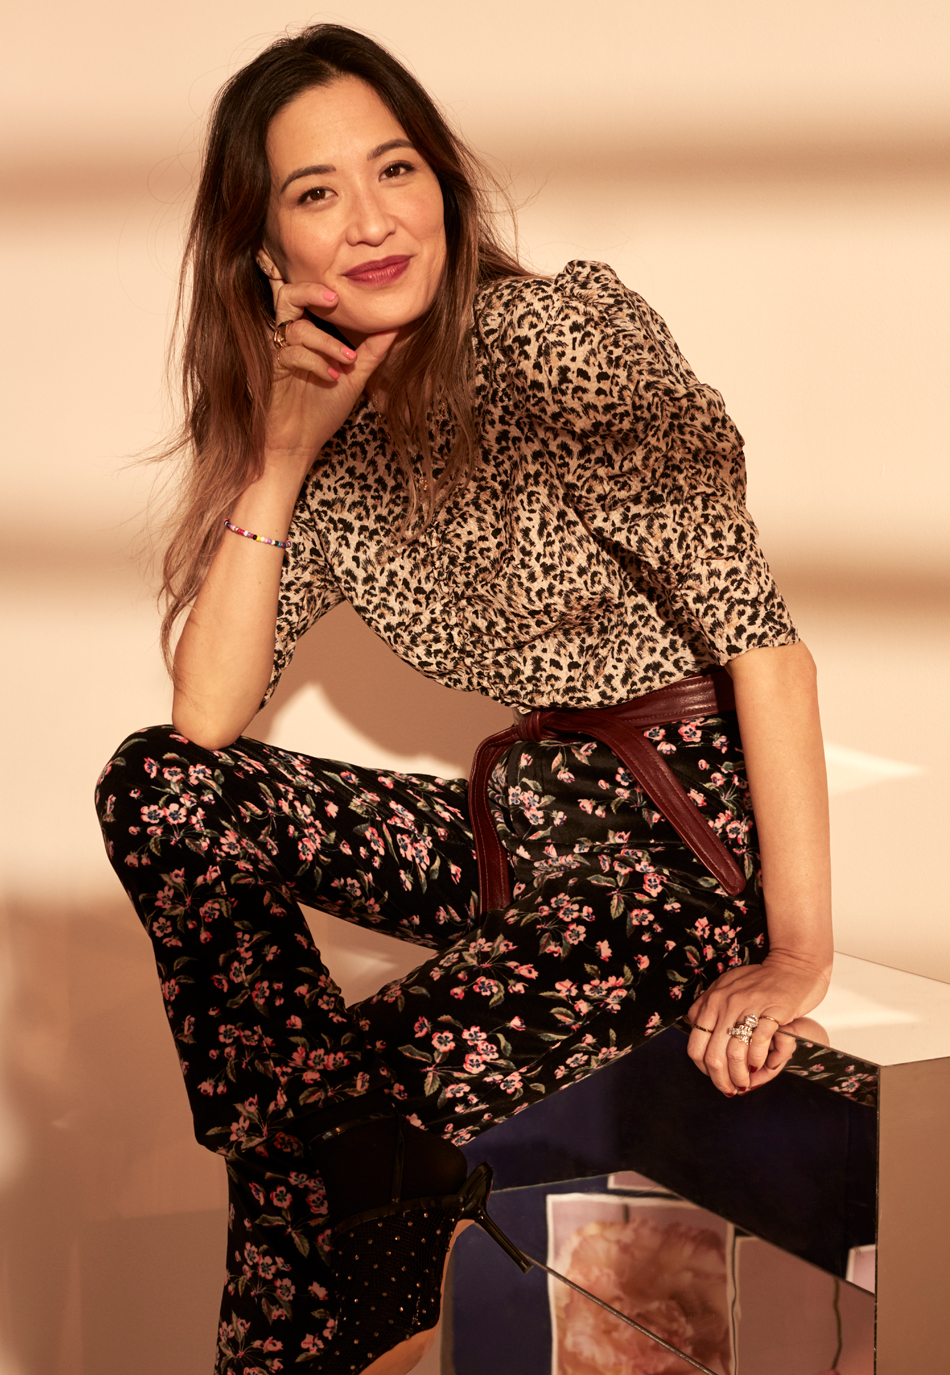 Caroline in leopard print top and floral pants sitting